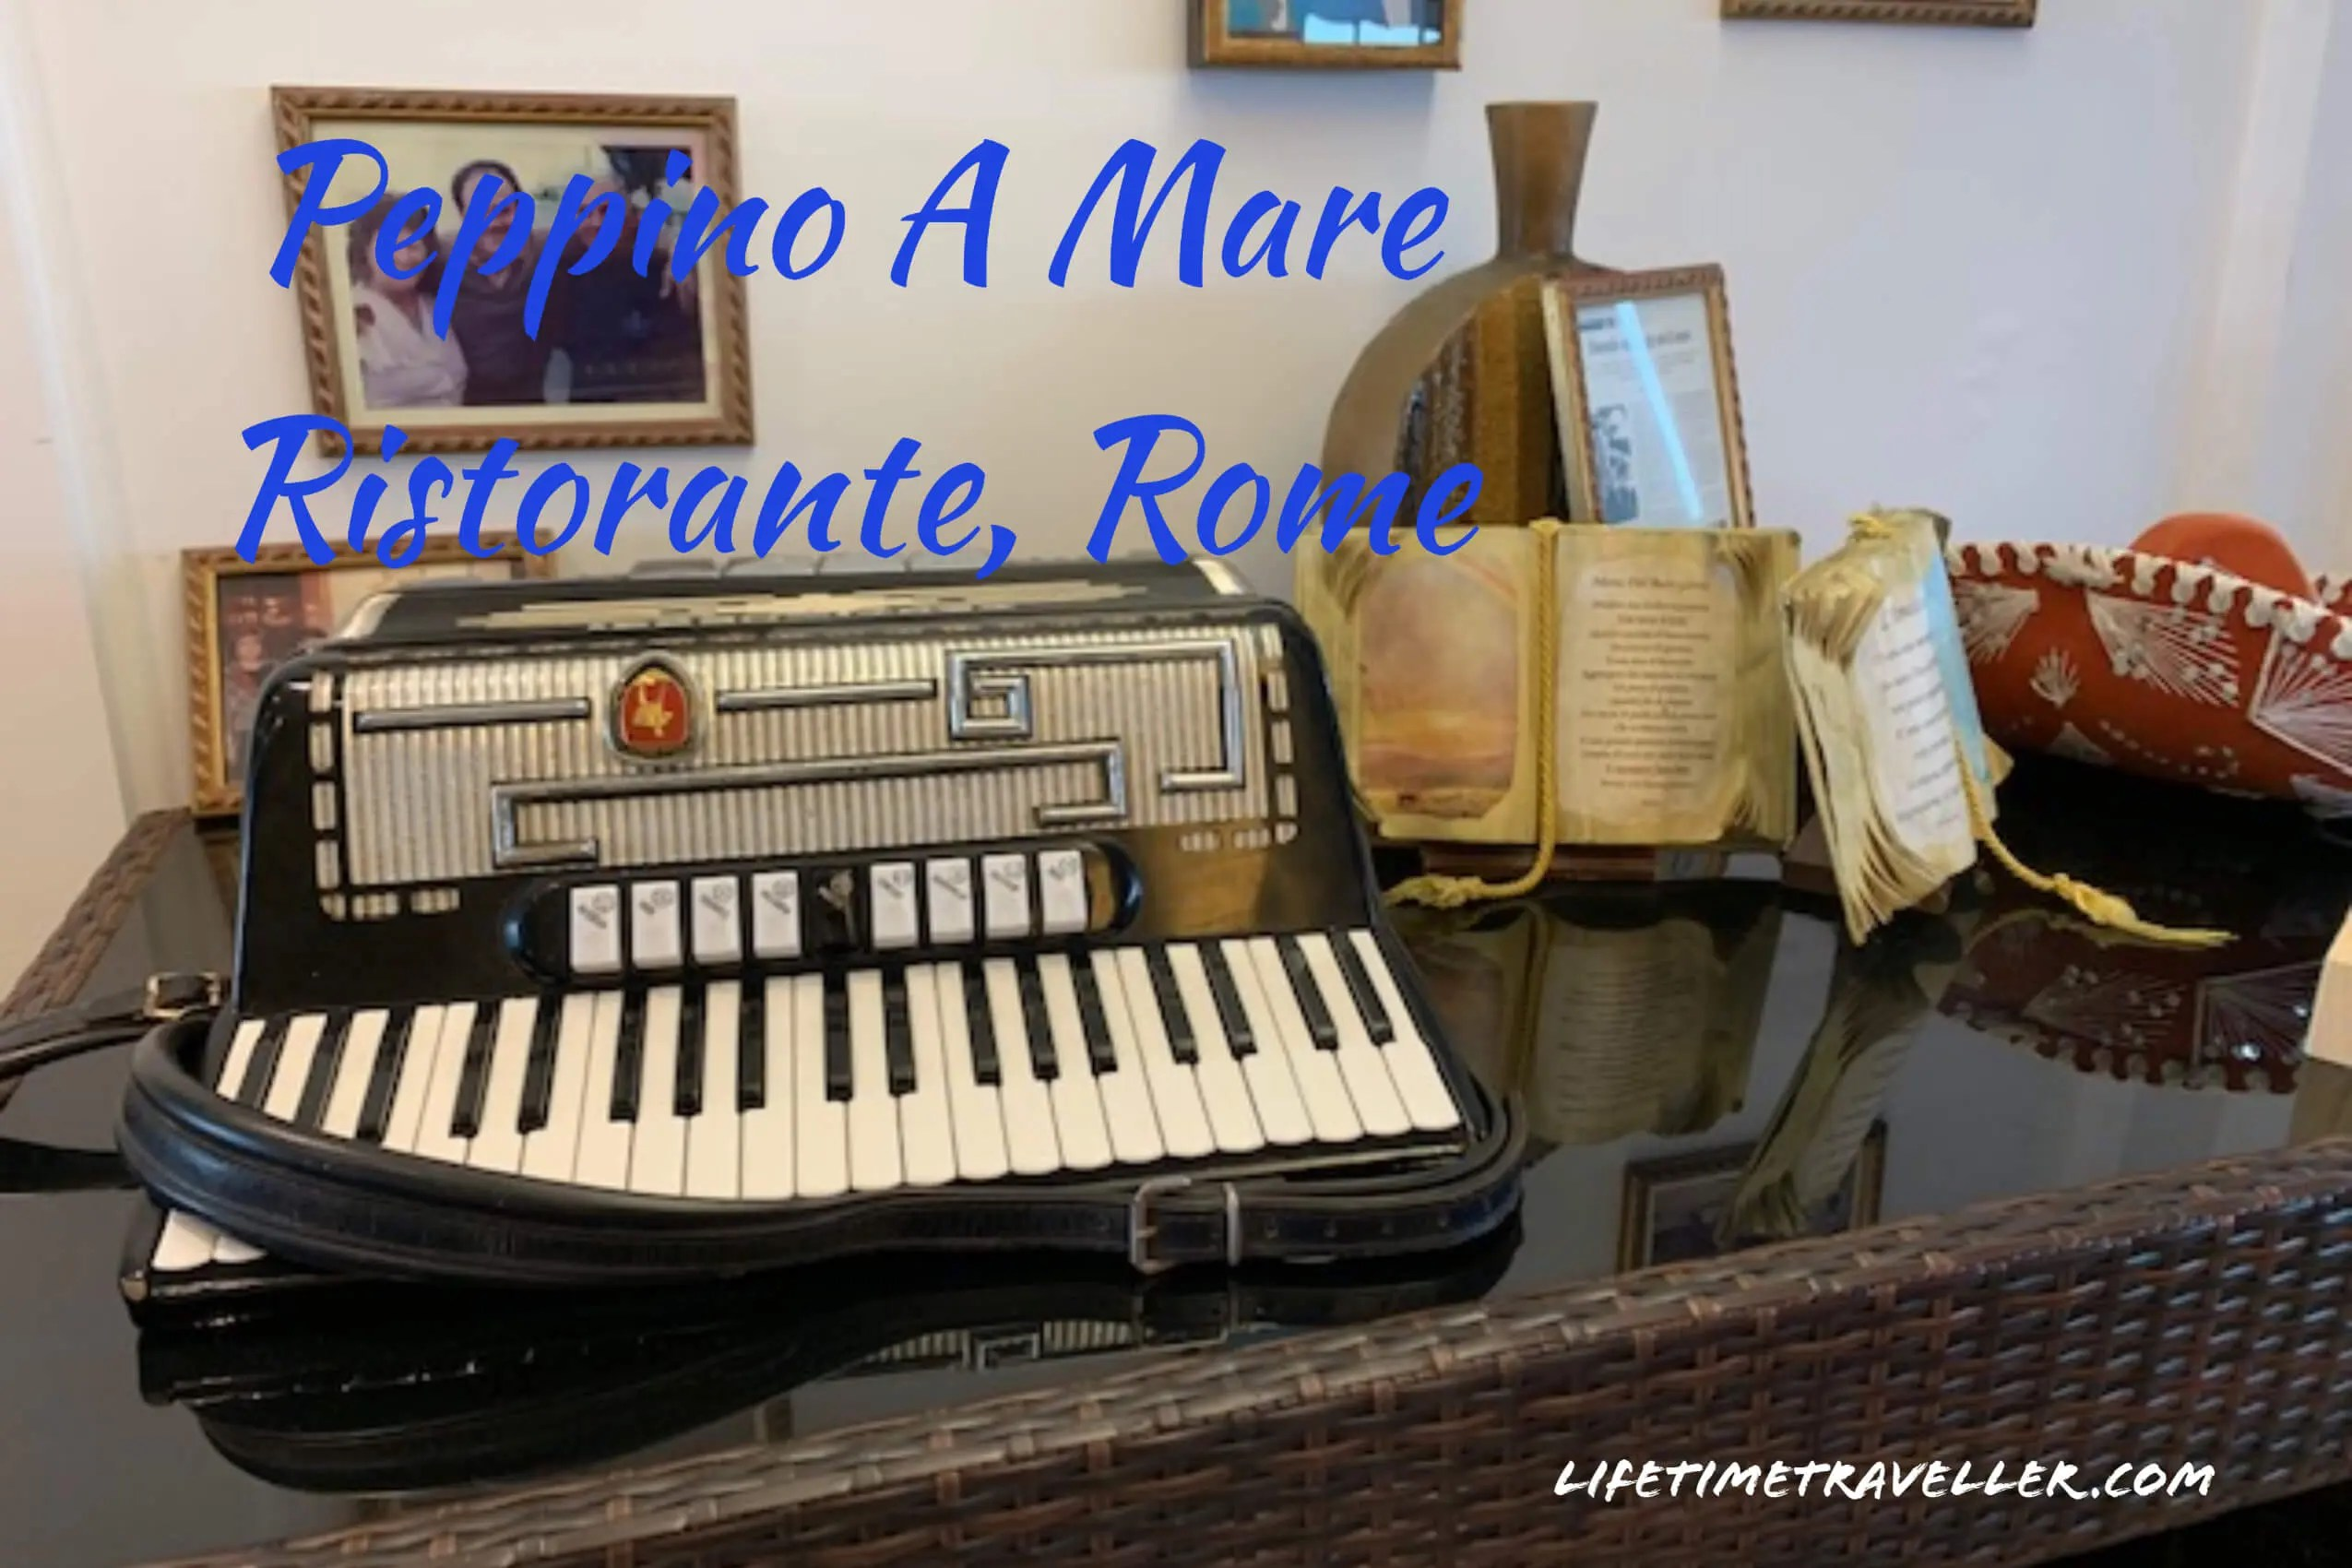 Peppino A Mare Ristorante, a Restaurant Review